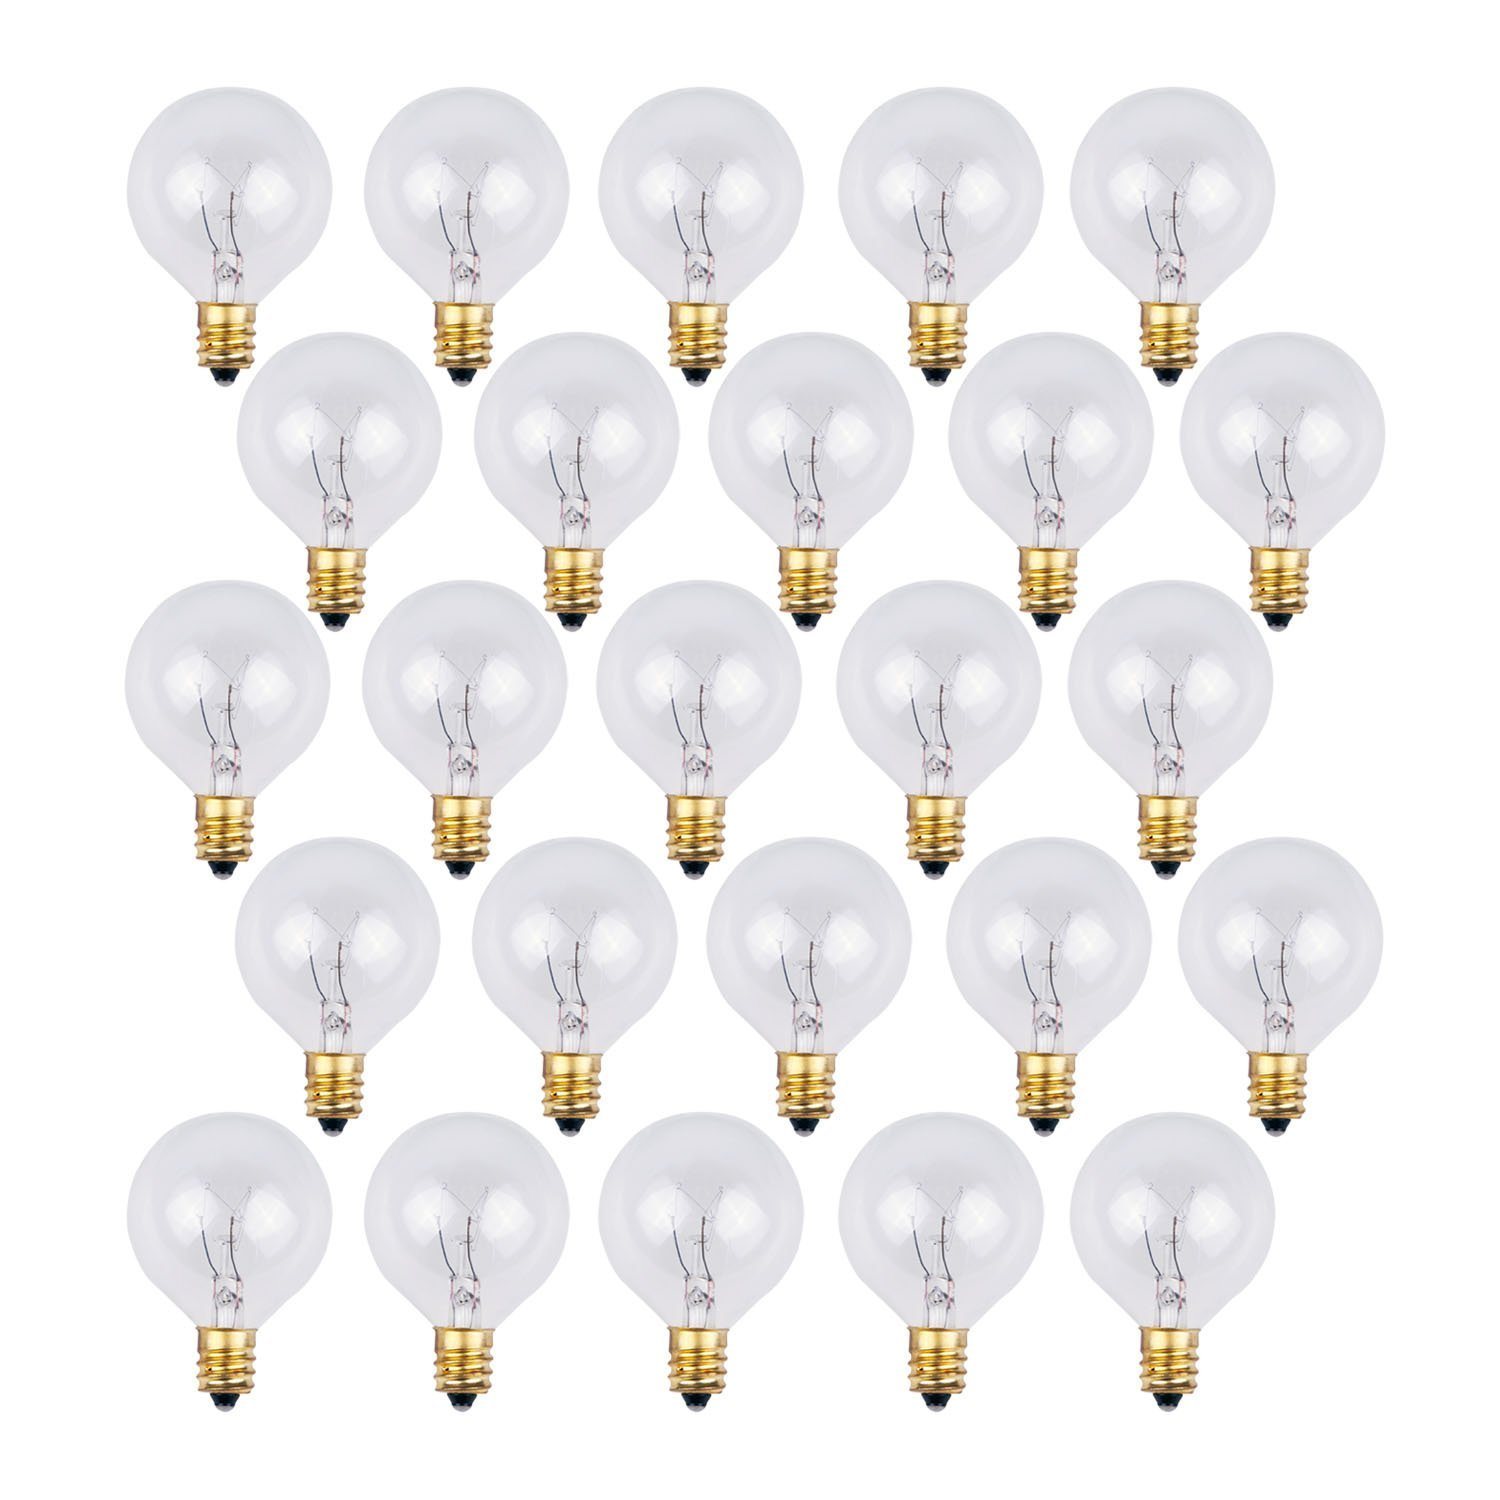 25 Pack - Clear G40 Globe Light Bulbs For Patio String Lights Fits E12 and C7 Base 5 Watt G40 Replacement Bulbs For Patio Lights